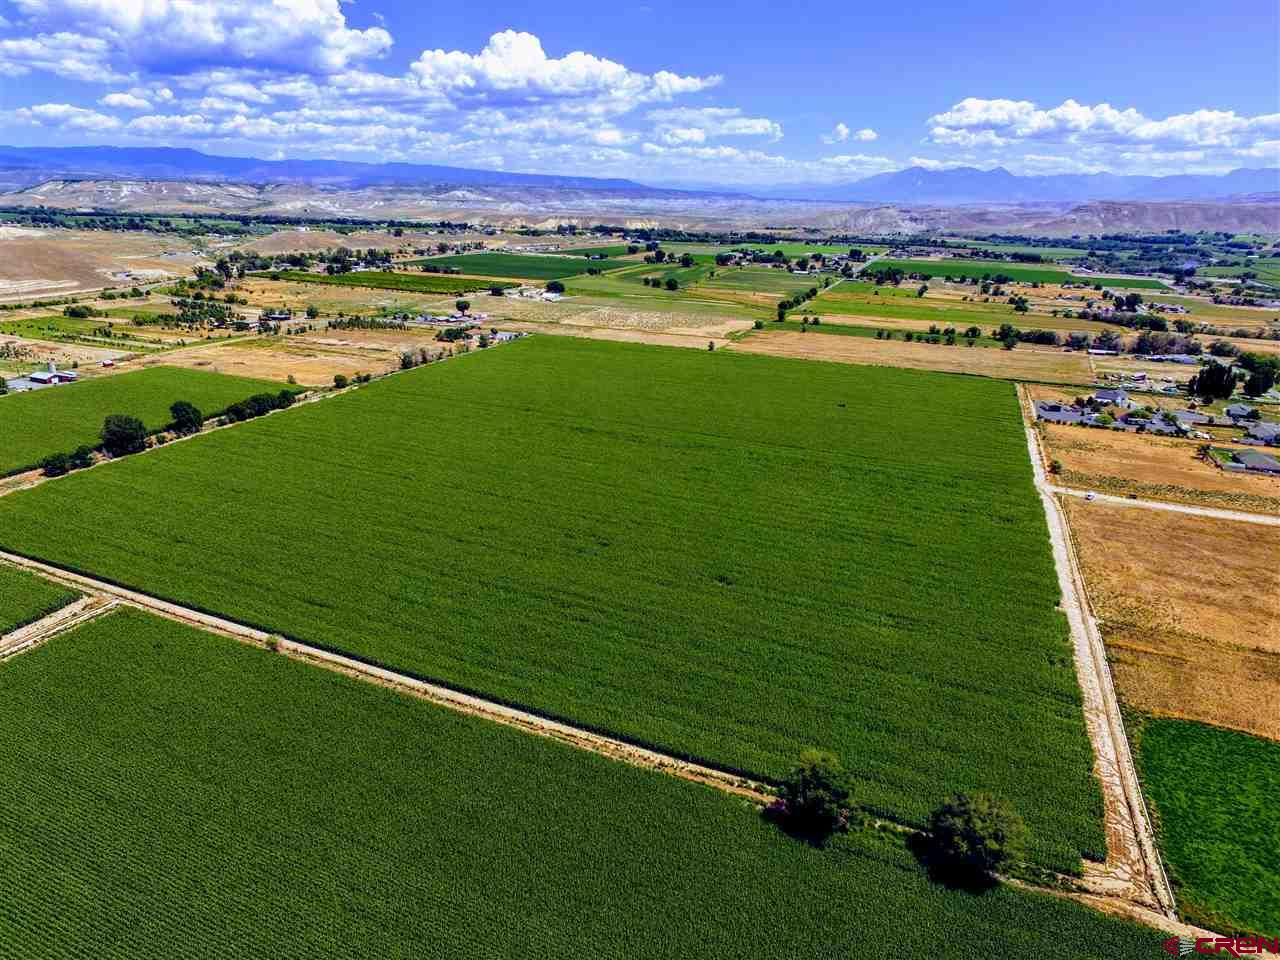 51+ ACRES OF PRIME IRRIGATED FARM GROUND! Tons of potential here for growing a number of different types of crops, including HEMP or HOPS. Also has the excellent possibility of future Subdivision Development in an area that already has some very attractive Country Subdivisions & Homes. Gorgeous Views of the San Juans & the West Elks. Includes 900' of Gated Pipe, 50 Shares of Butte Ditch w/allocated OCID Irrigation and an Installed Orchard City Domestic Water Tap. Come build your Dream Home, Farm, Orchard, Ranch or whatever you want. Property is fenced on West & North Side & partial on South Side. There is an irrigation ditch that borders the East Side w/fencing along the other side of the ditch. Owner currently has an agreement with a tenant that irrigates & farms the land, so any growing crops at the time of sale would belong to the tenant. (Note: Any Subdivision Development of the land would be dependent on the availability of additional Orchard City Domestic Water Taps.)